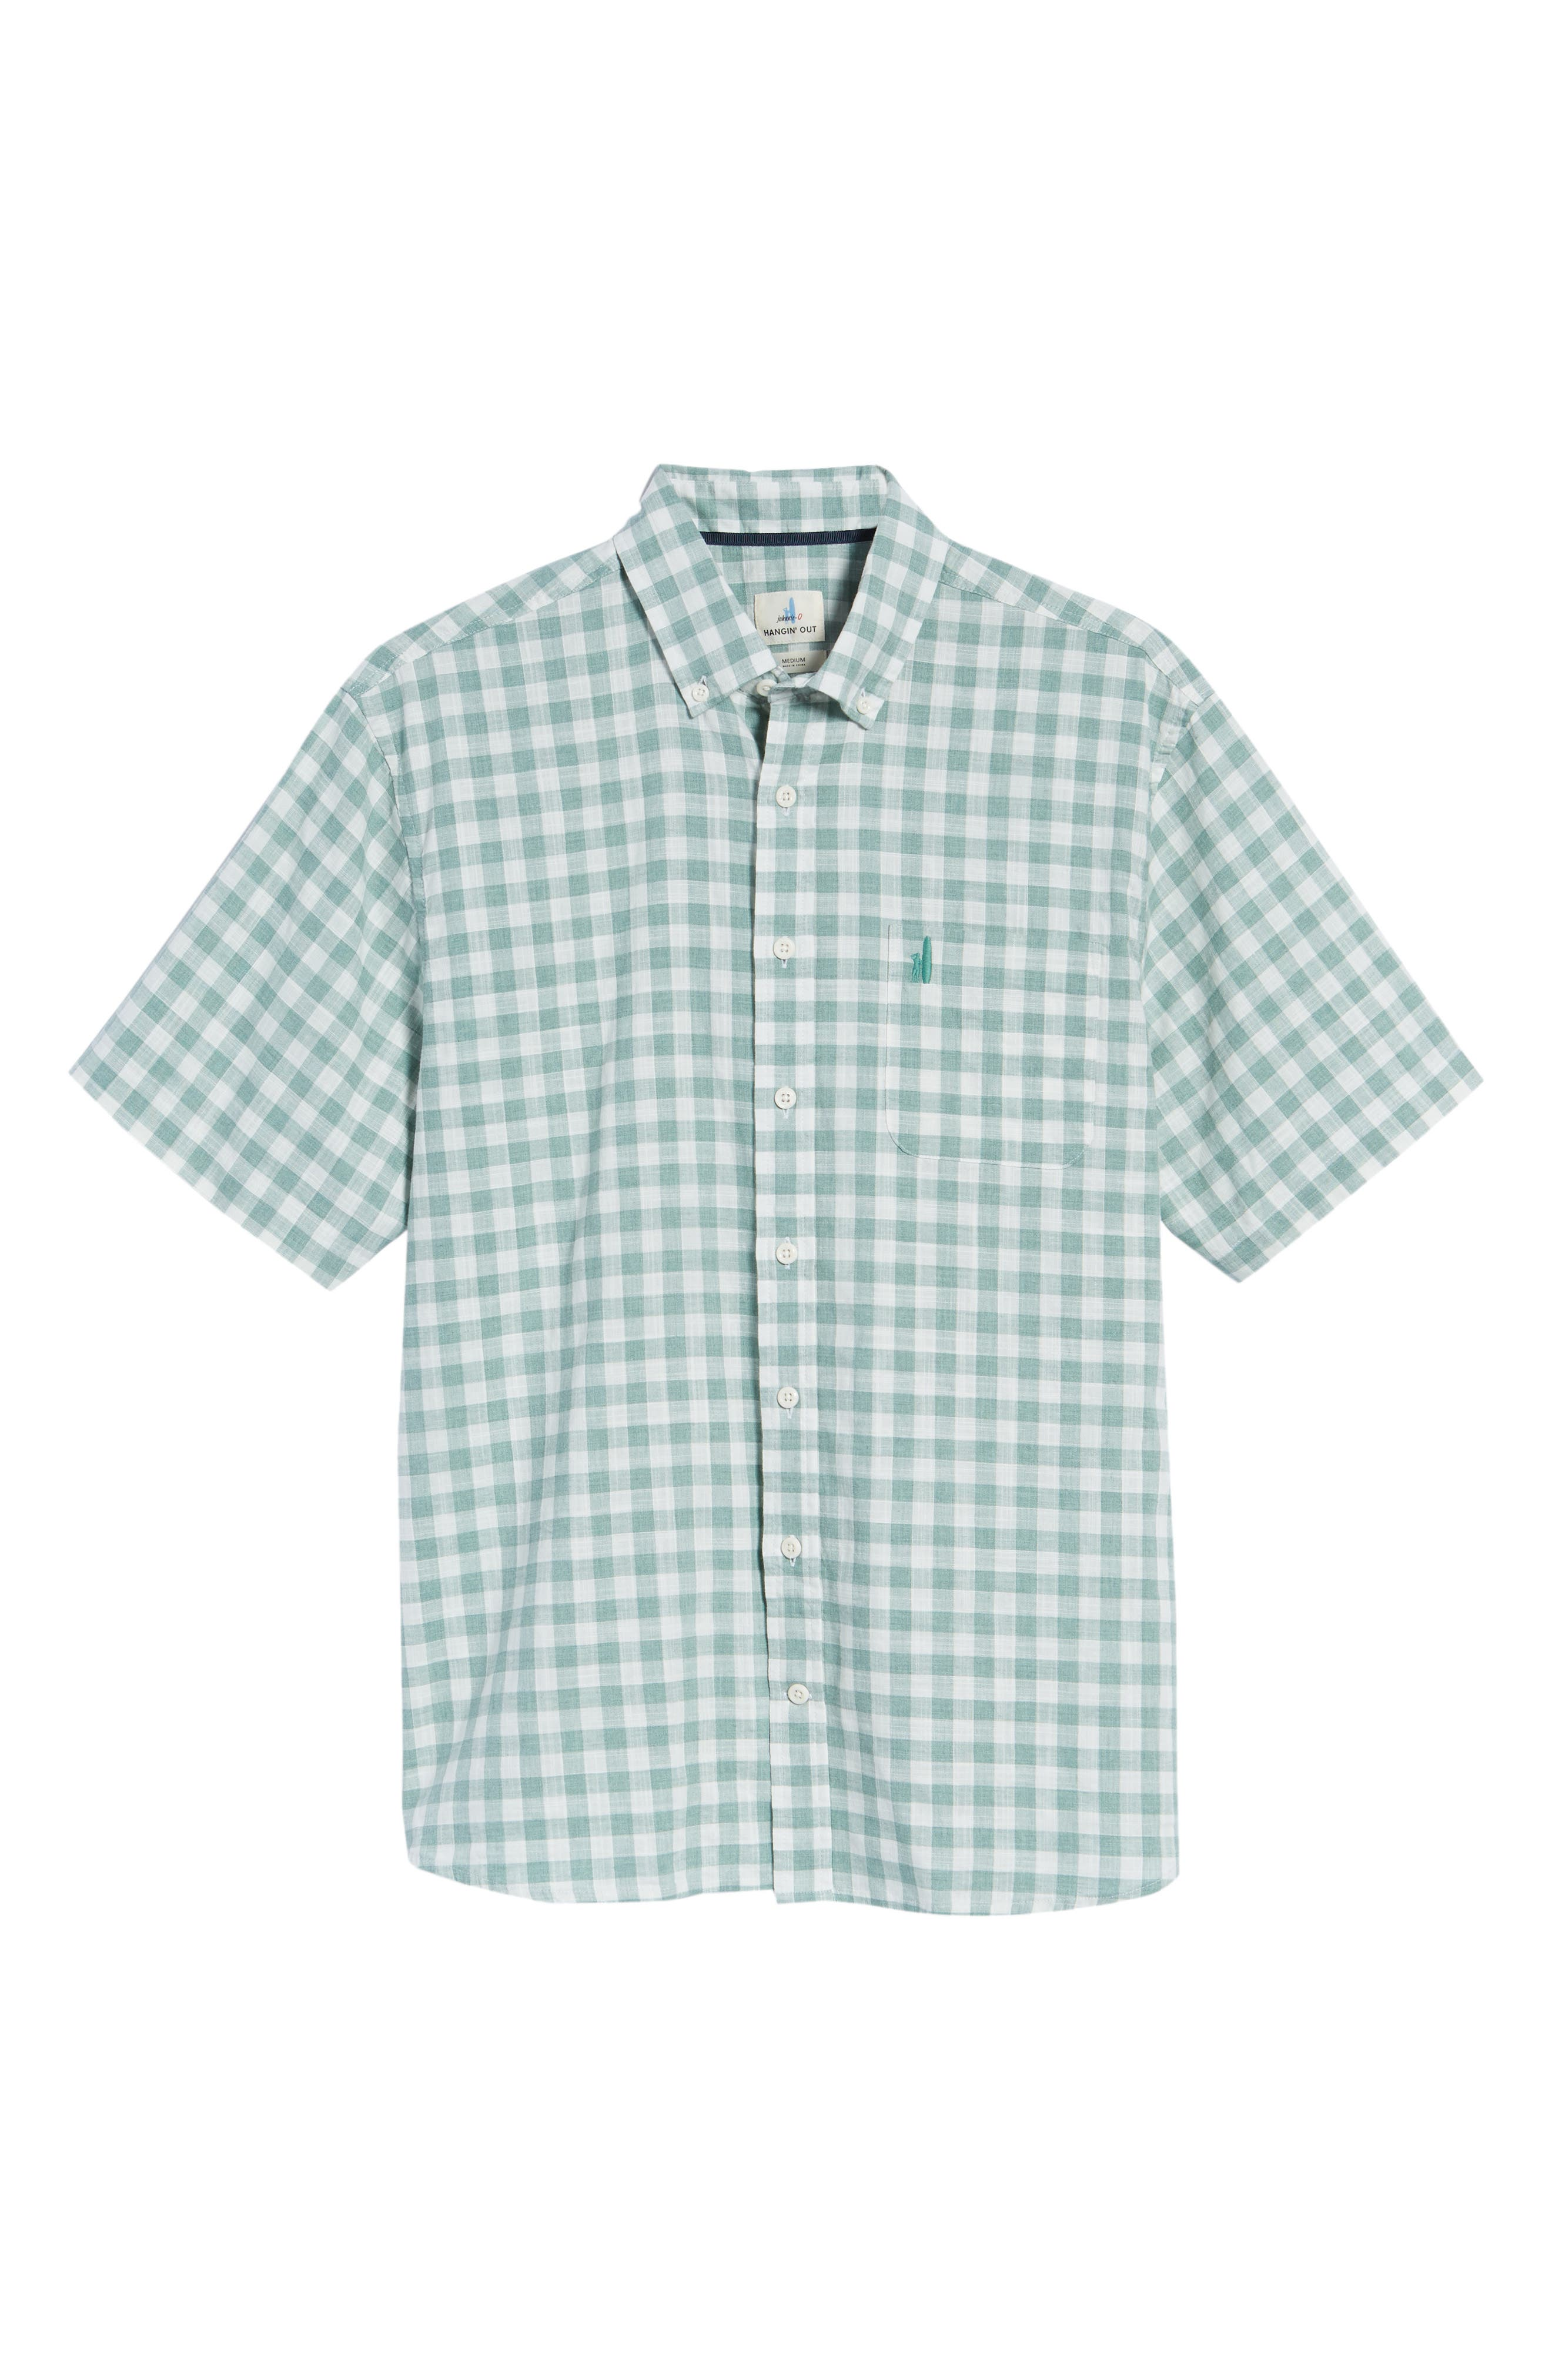 Watts Classic Fit Gingham Sport Shirt,                             Alternate thumbnail 5, color,                             CLOVER